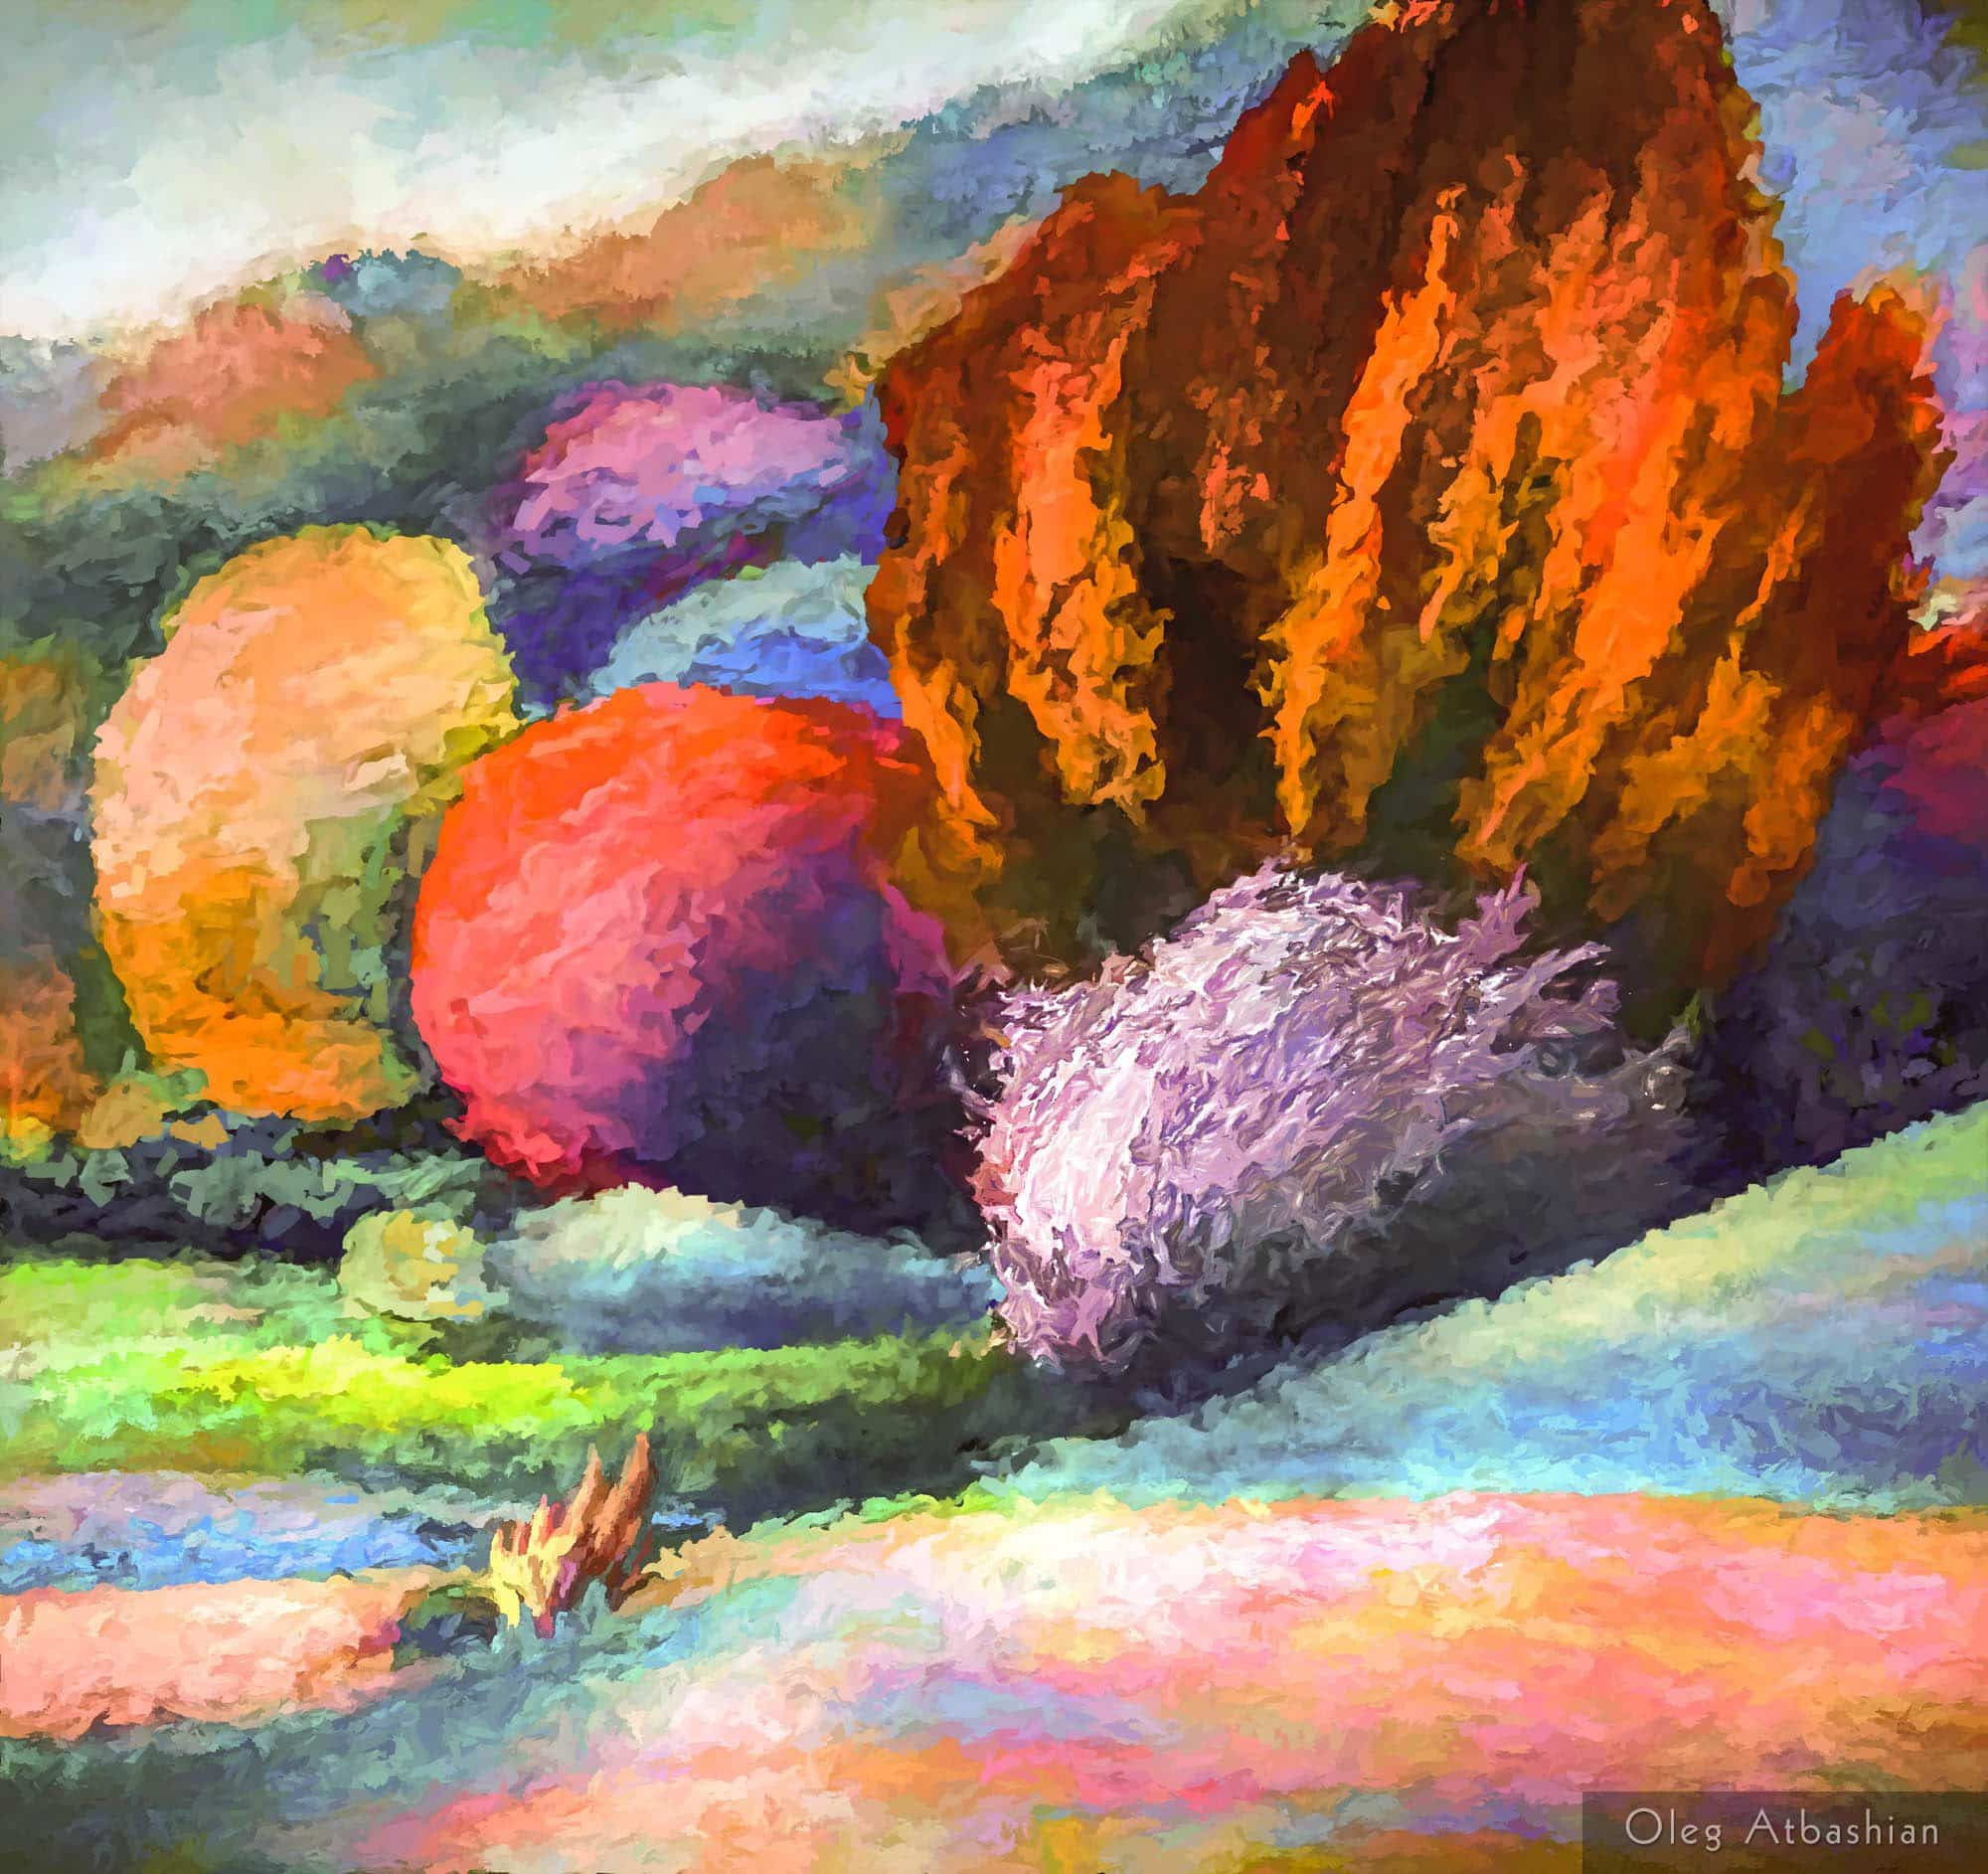 Pink Grass in Sunset, Yaroshivka, Ukraine